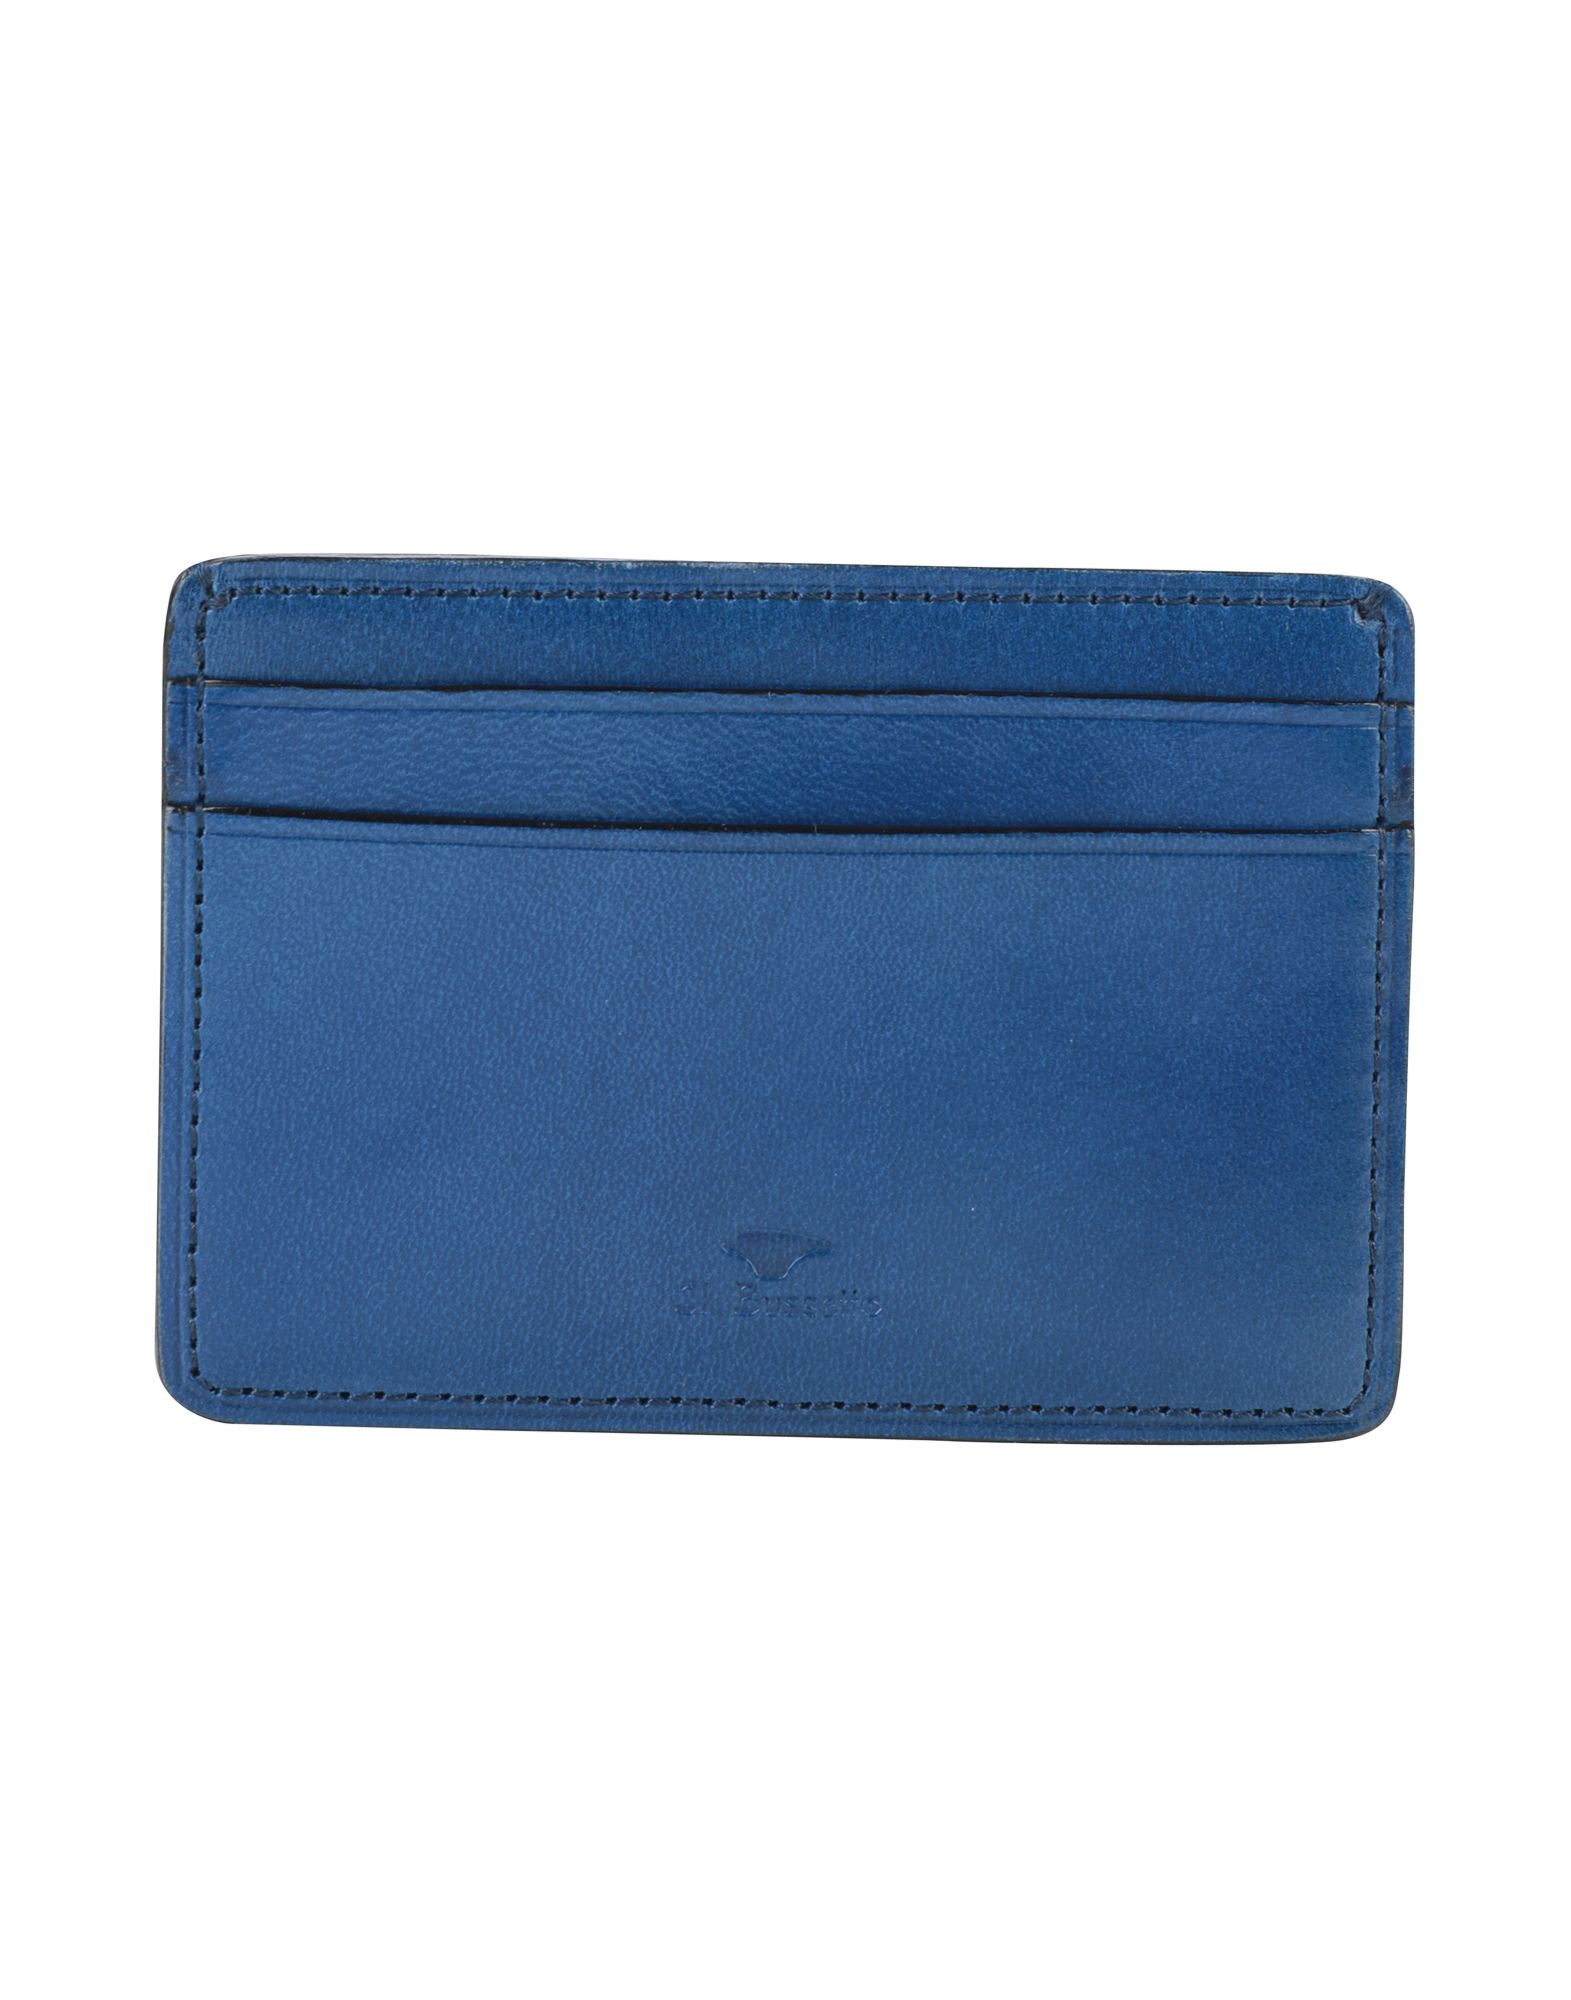 IL BUSSETTO Document Holder in Blue